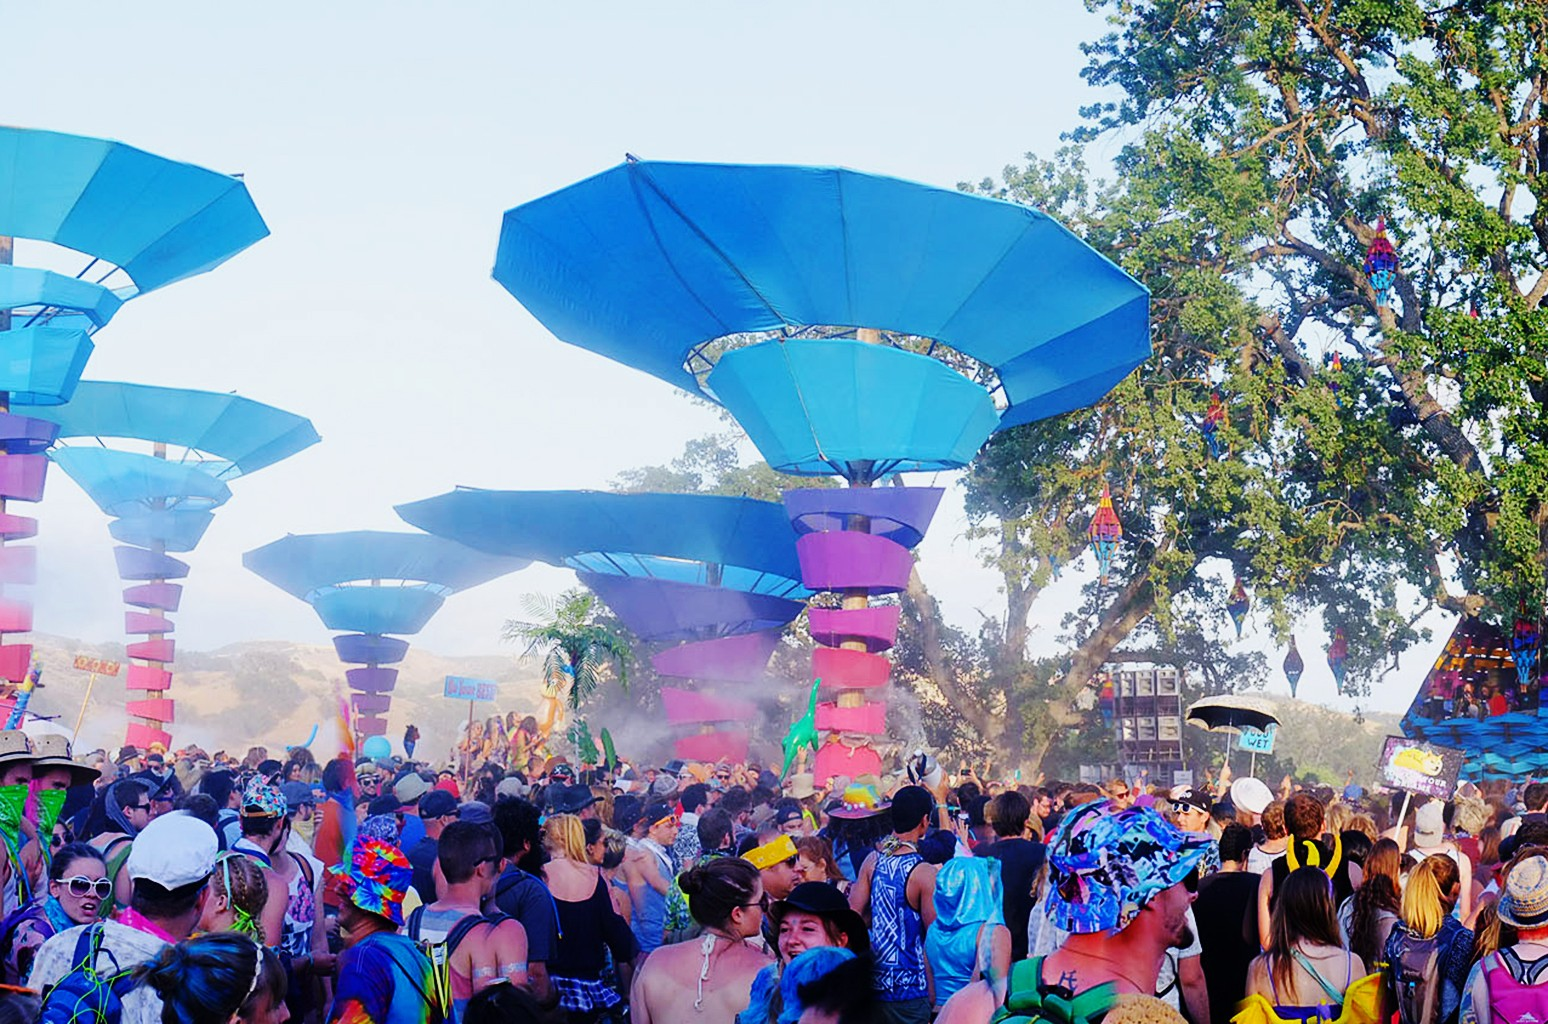 A general view of The Woogie Stage during the 2015 Lightning In A Bottle Festival on May 22, 2015 in San Miguel, Calif.